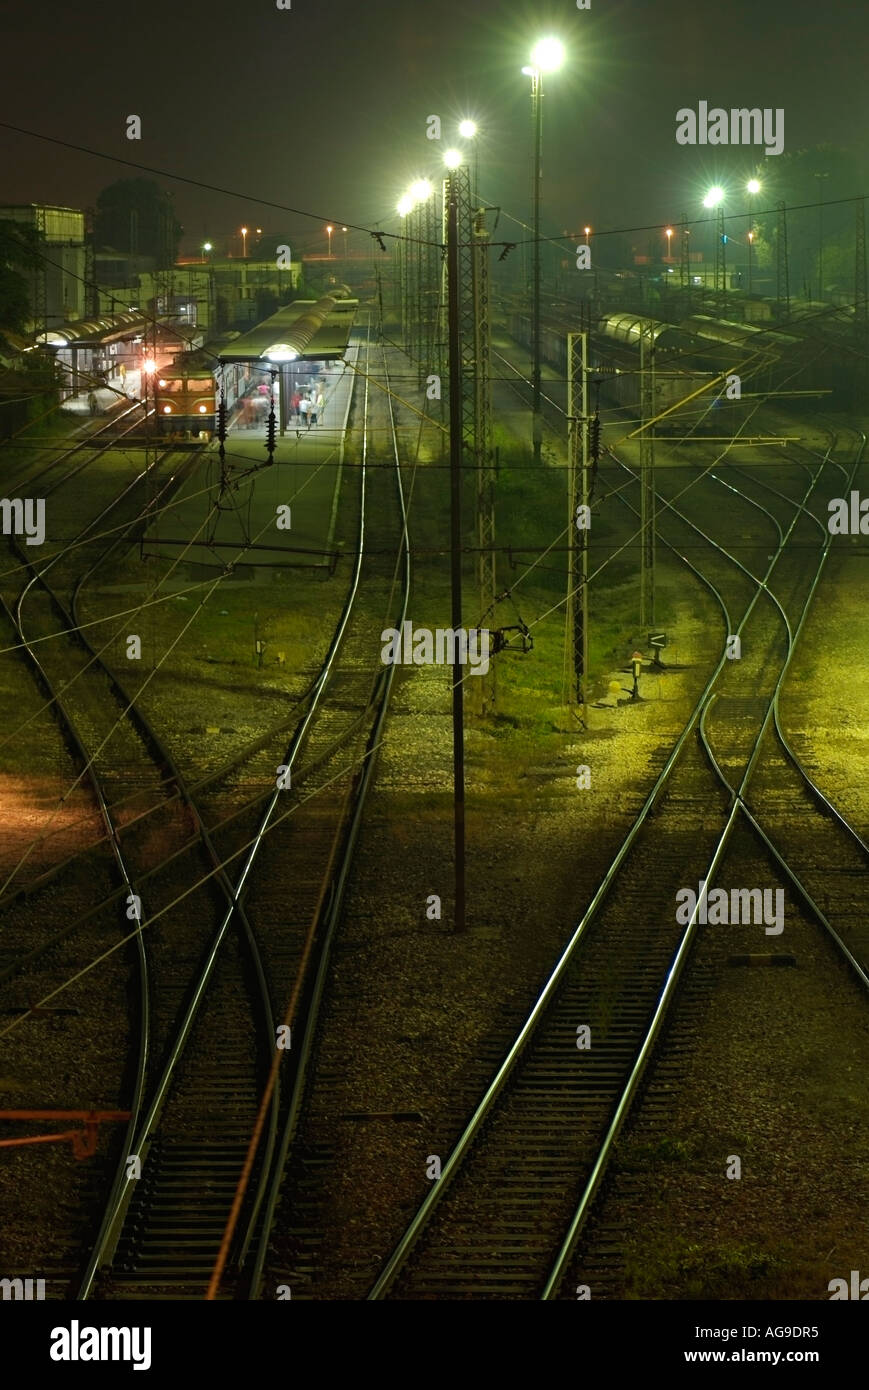 Railway Tracks Leading Into a Train Station and Freight Yard at Night - Stock Image